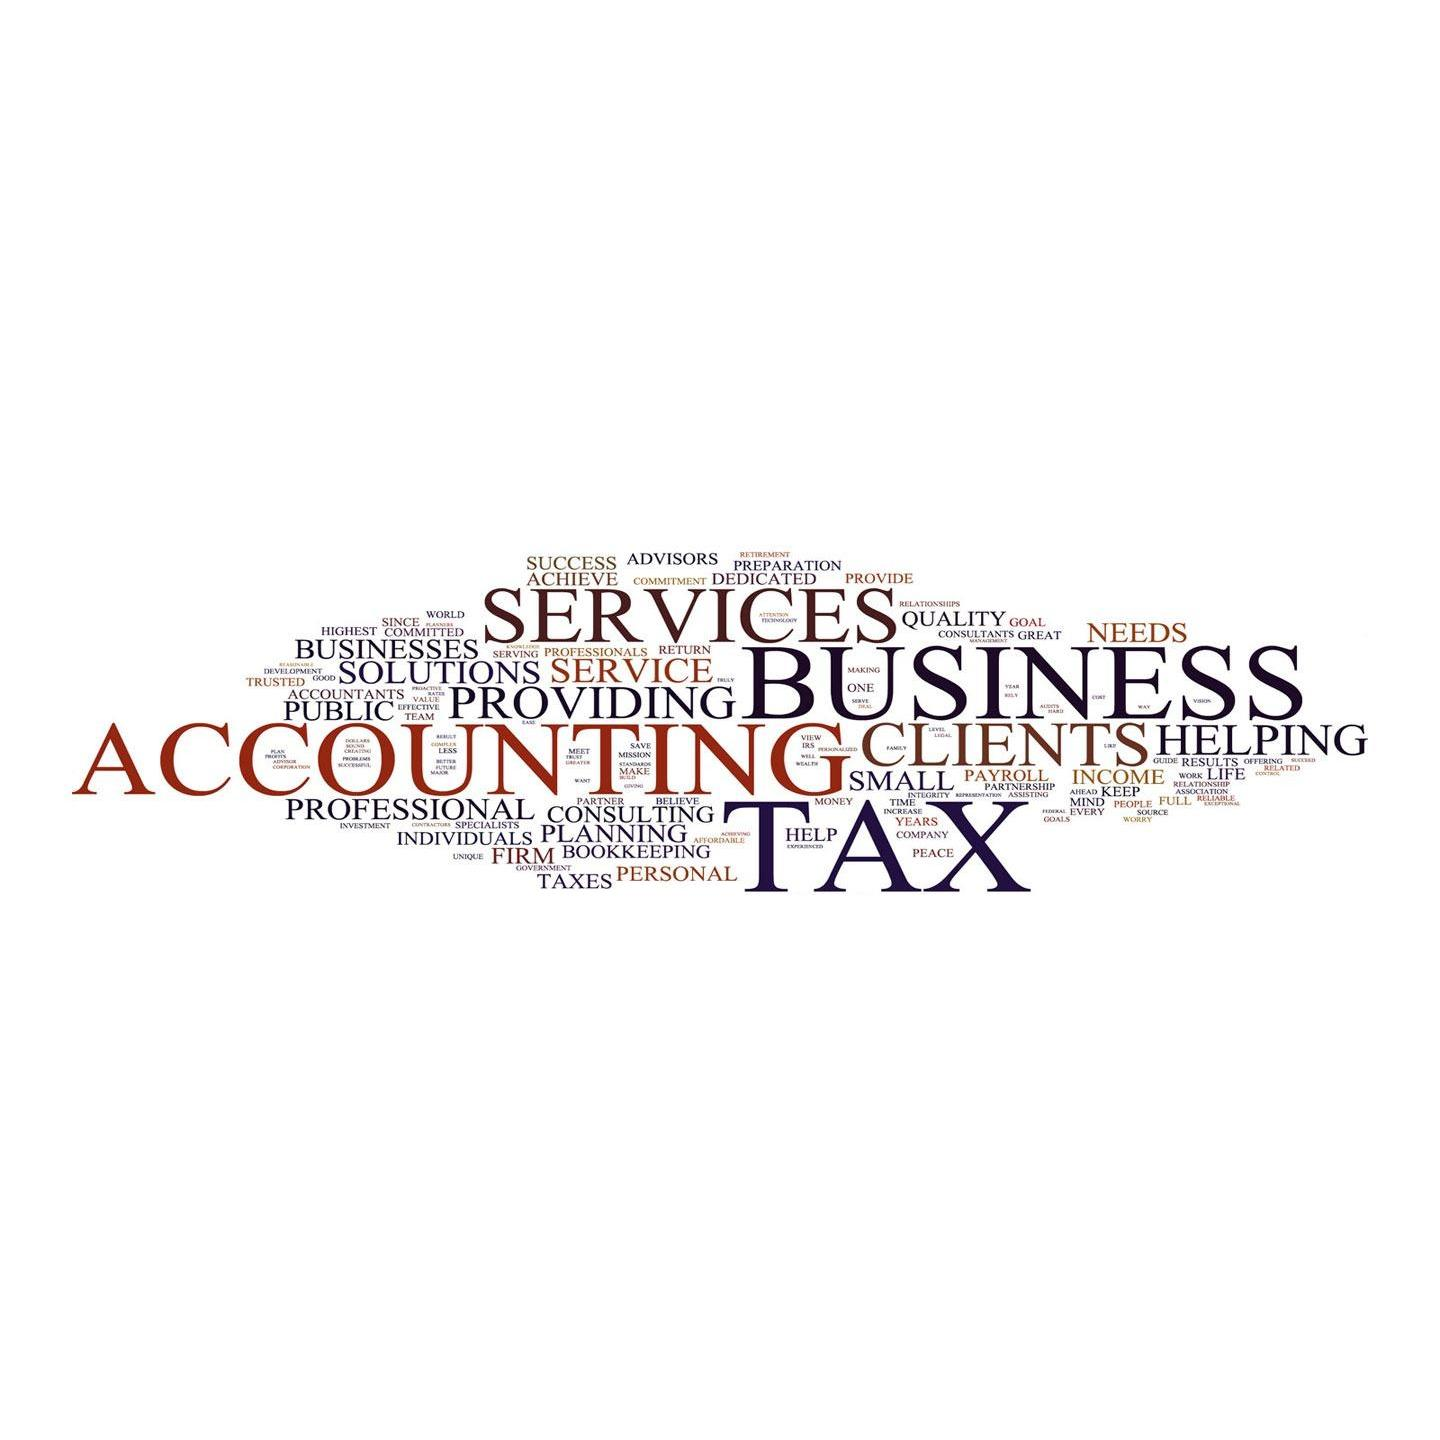 All In One Accounting Corp.